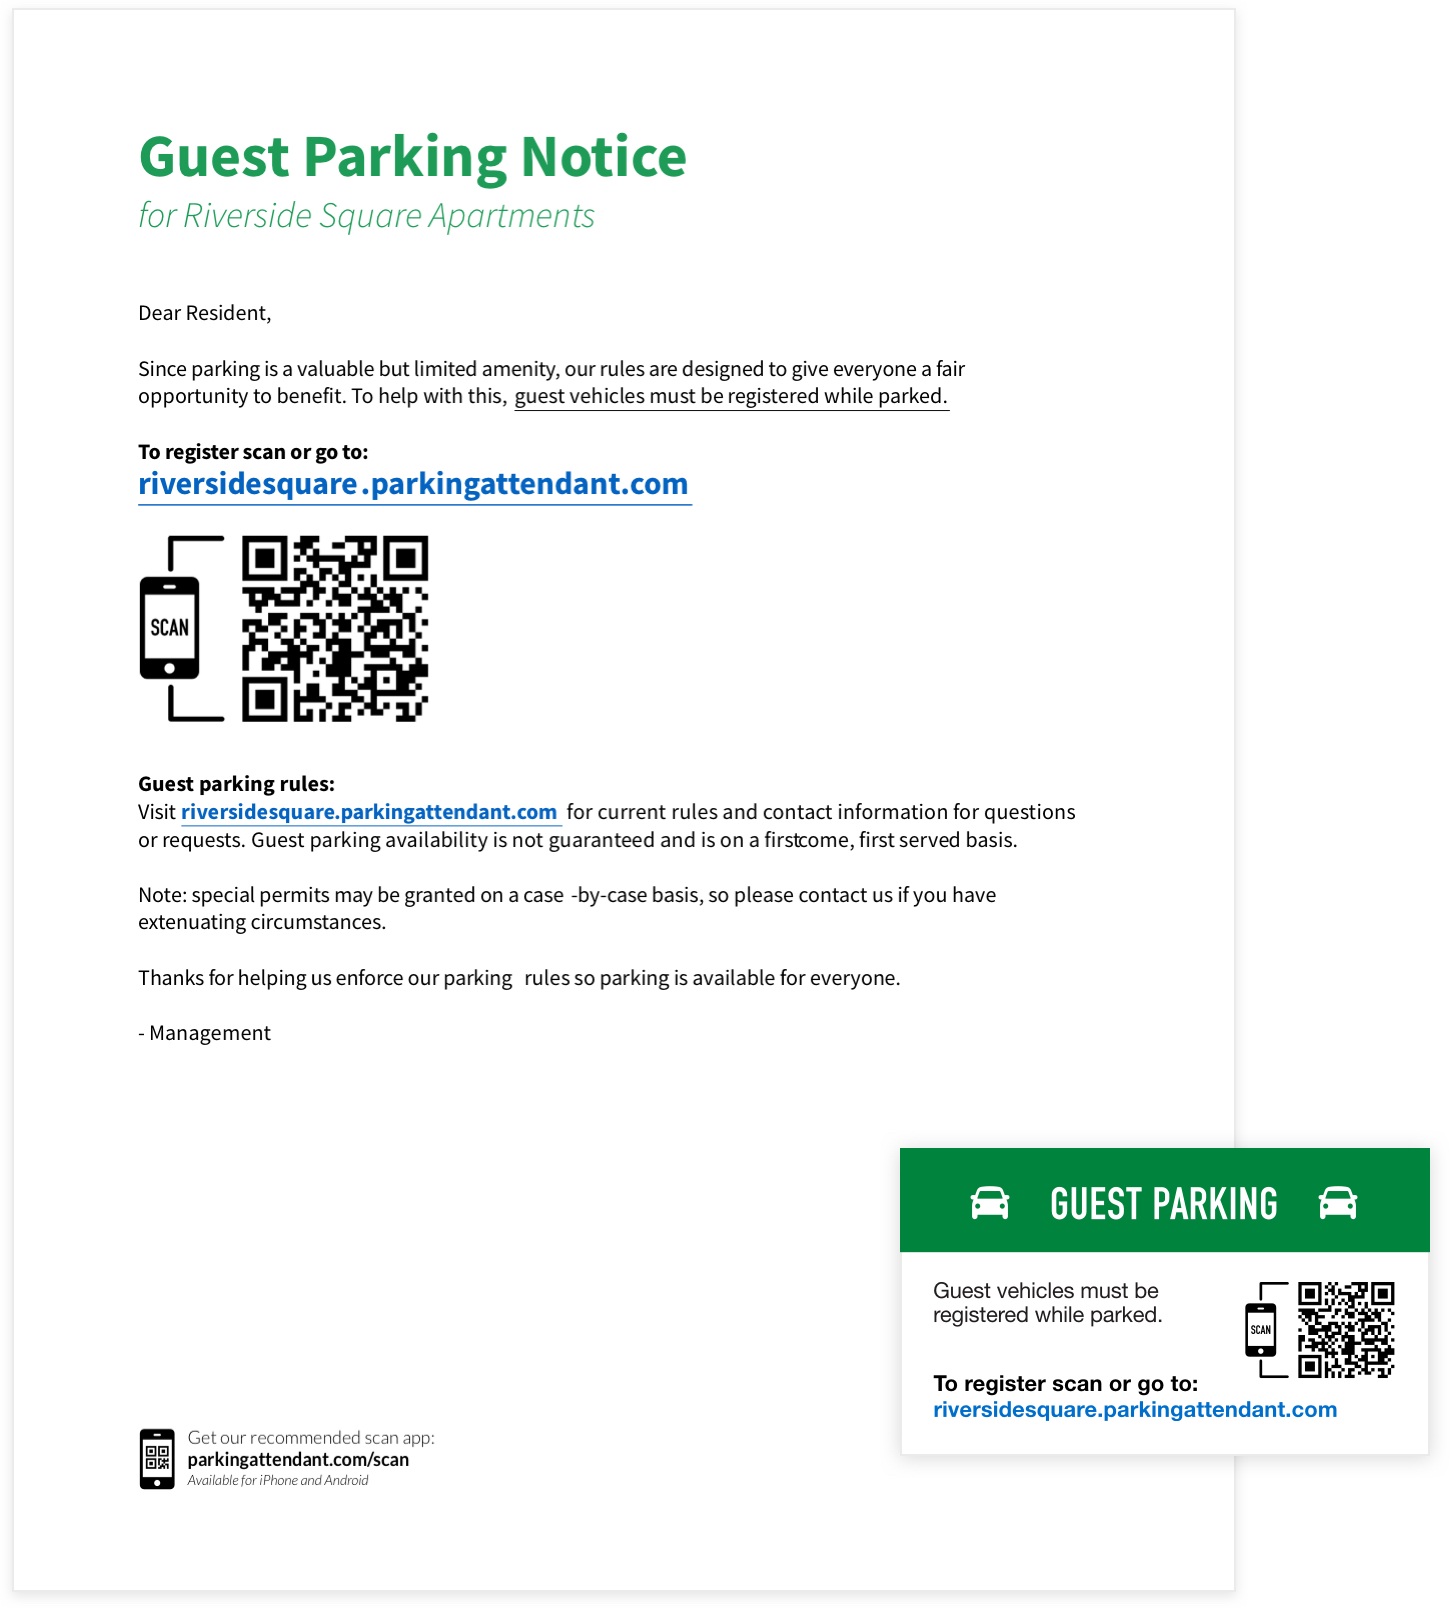 The guest parking notice informs your residents about the rules. Our magnets are a simple reminder and convenient way for residents to register their guests.